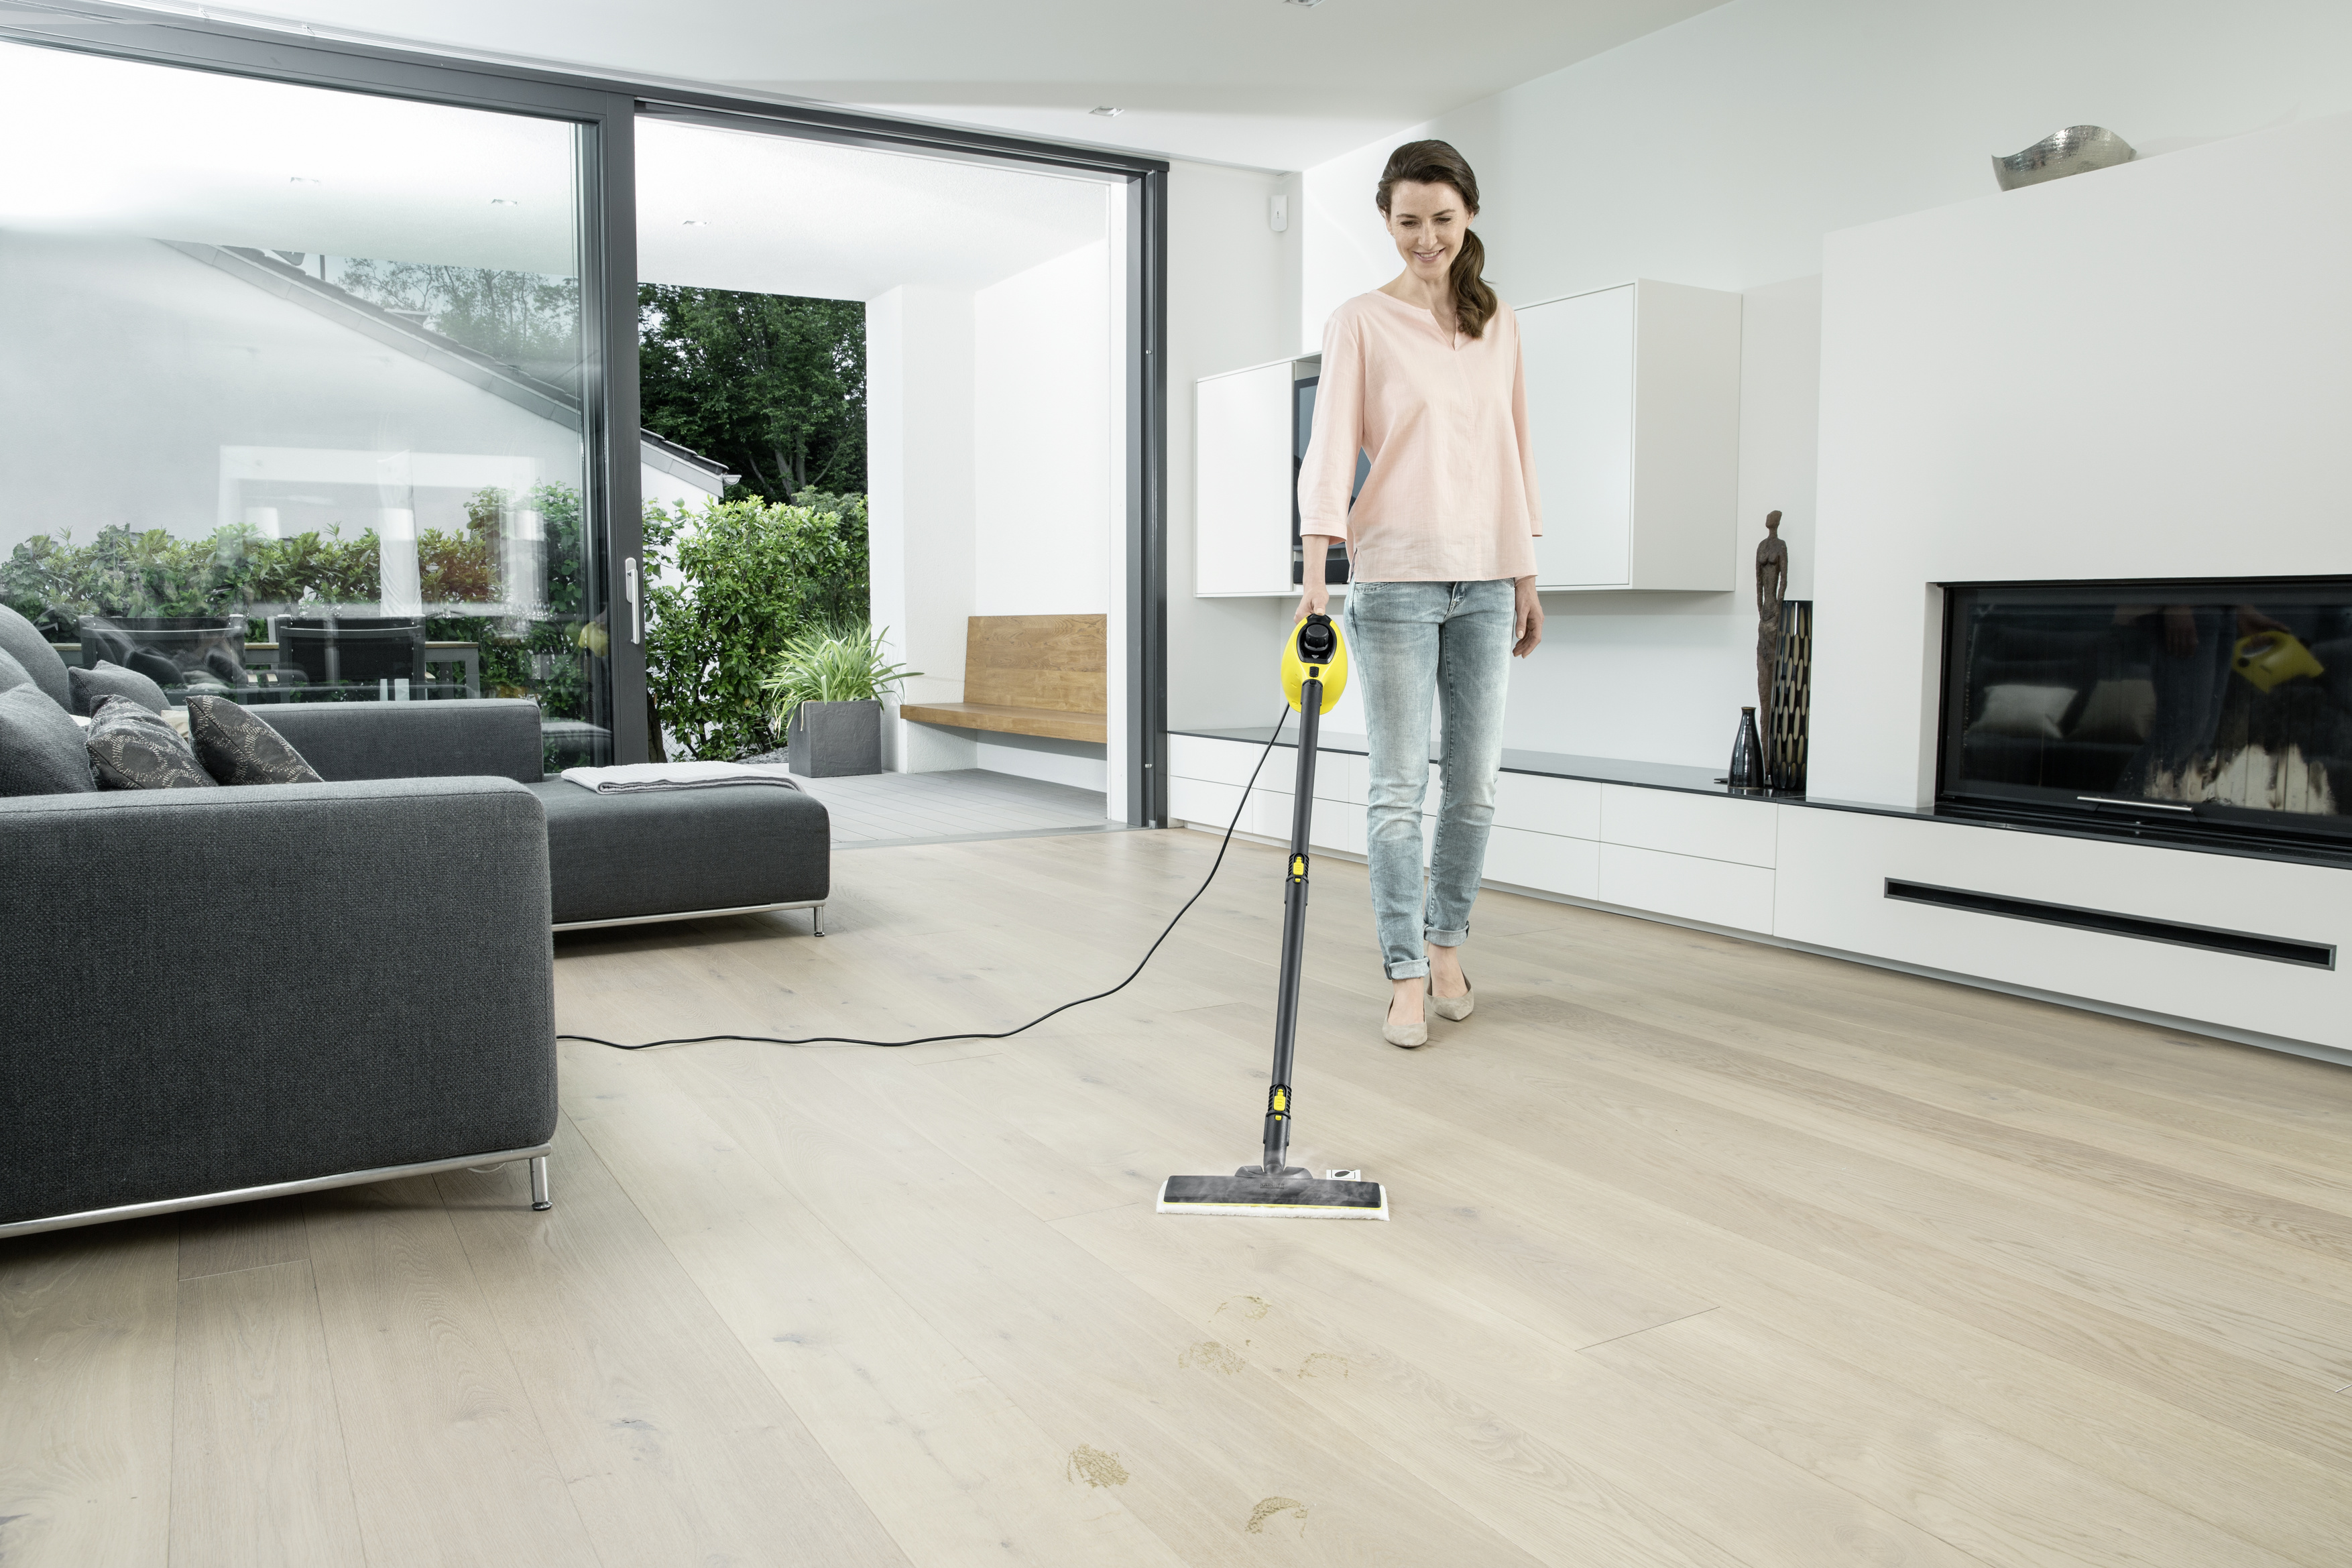 bbd9eacb699 Should you buy one of Karcher's new EasyFix steam cleaners ...